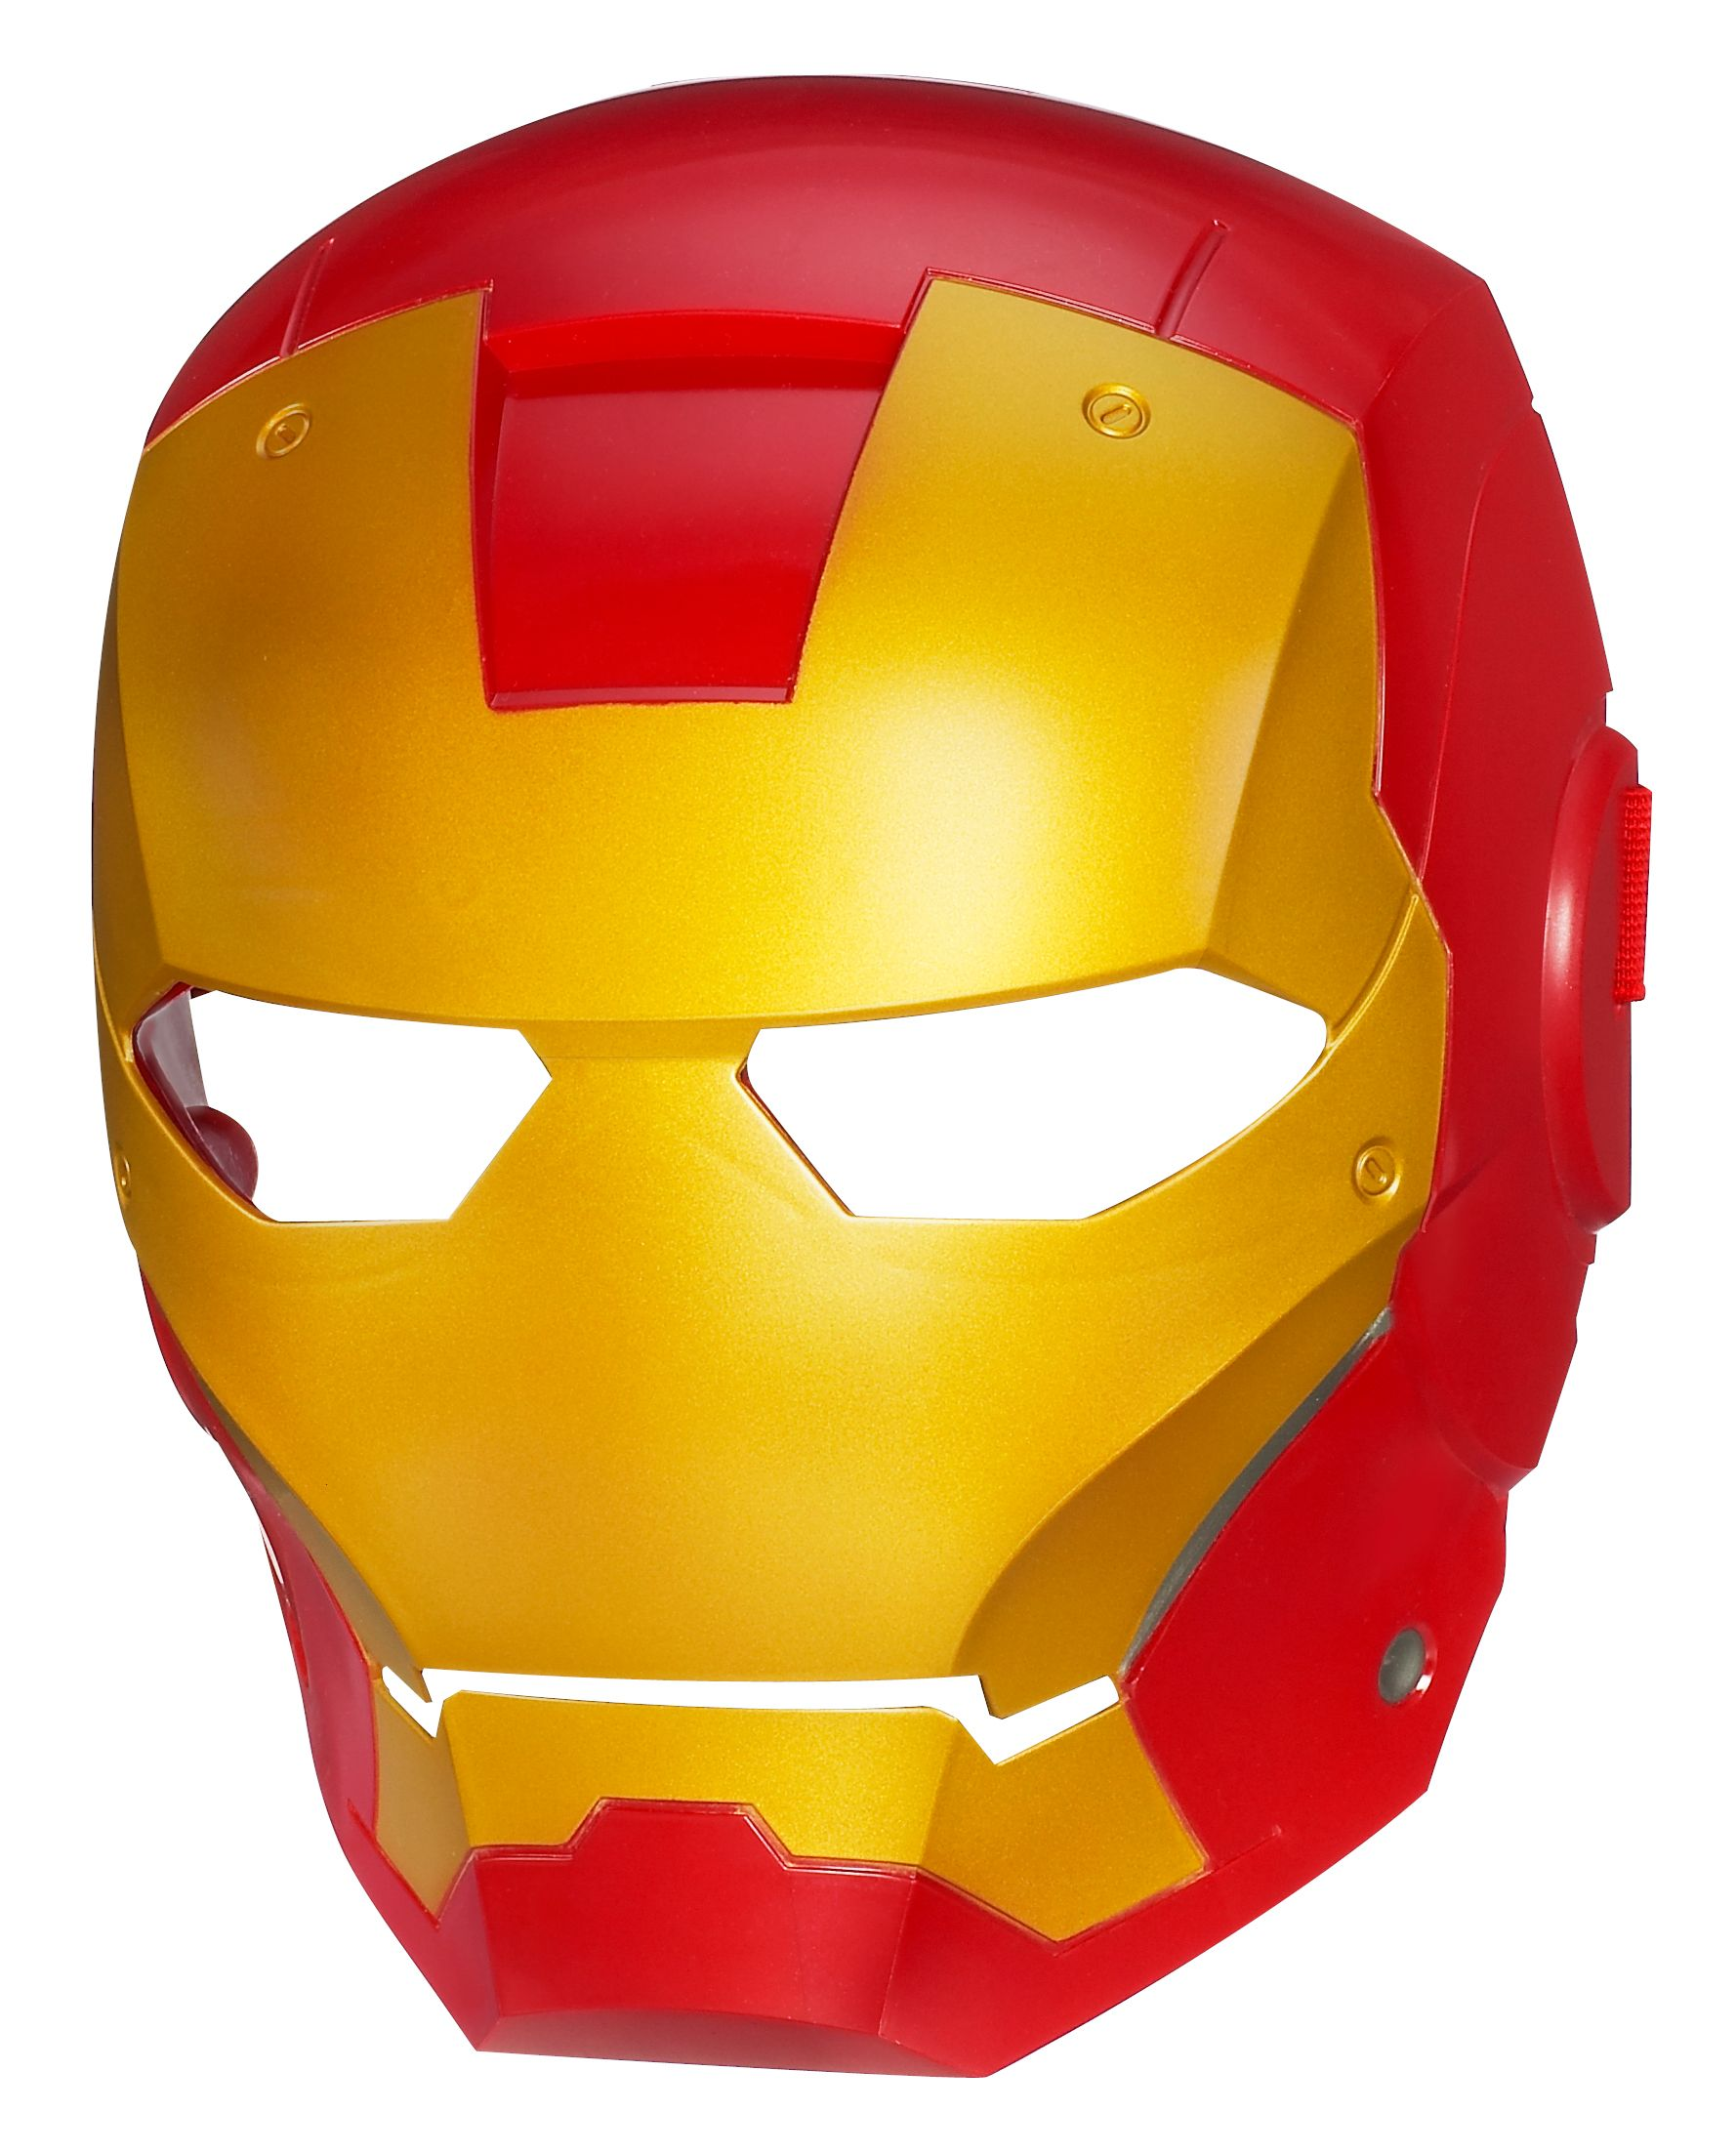 all the new iron man 2 toys in high resolution including